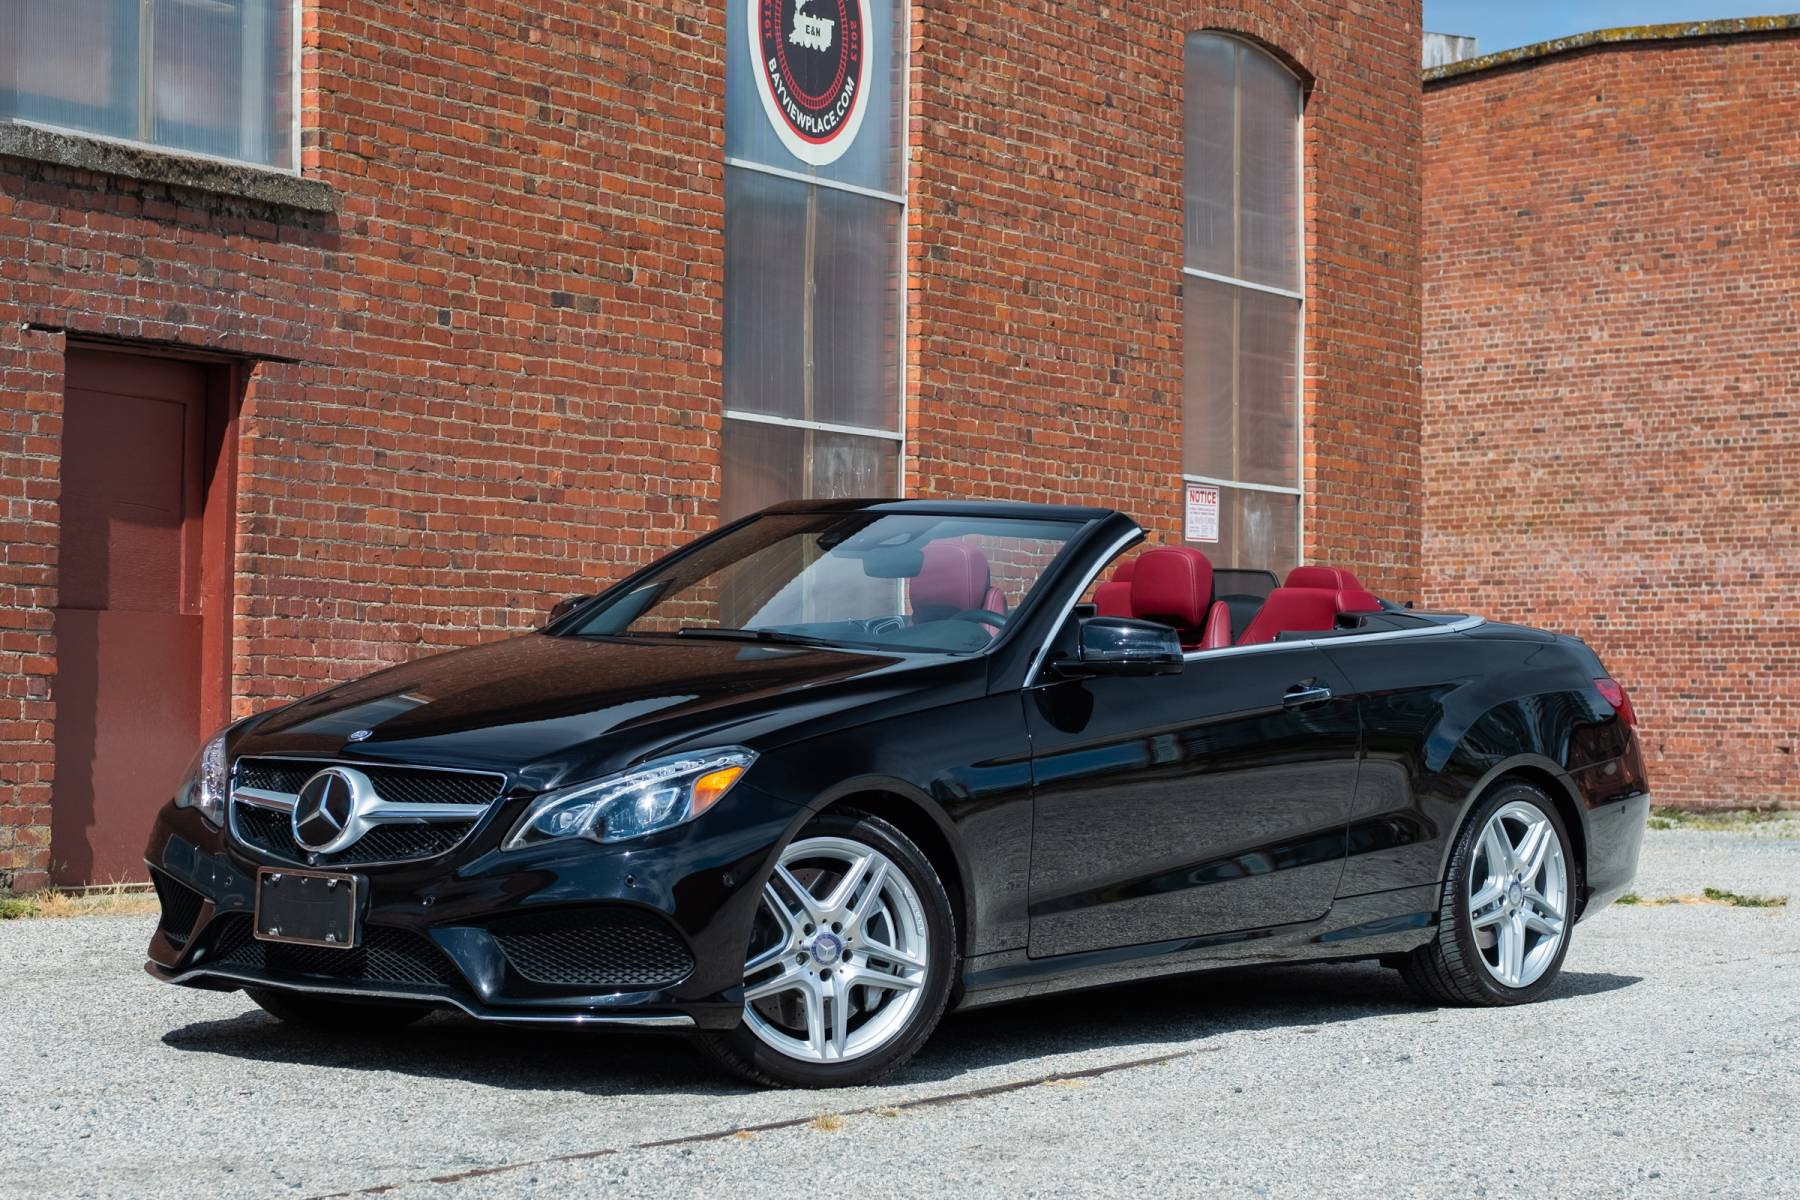 2014 Mercedes-Benz E550 Cabriolet - Silver Arrow Cars Ltd.